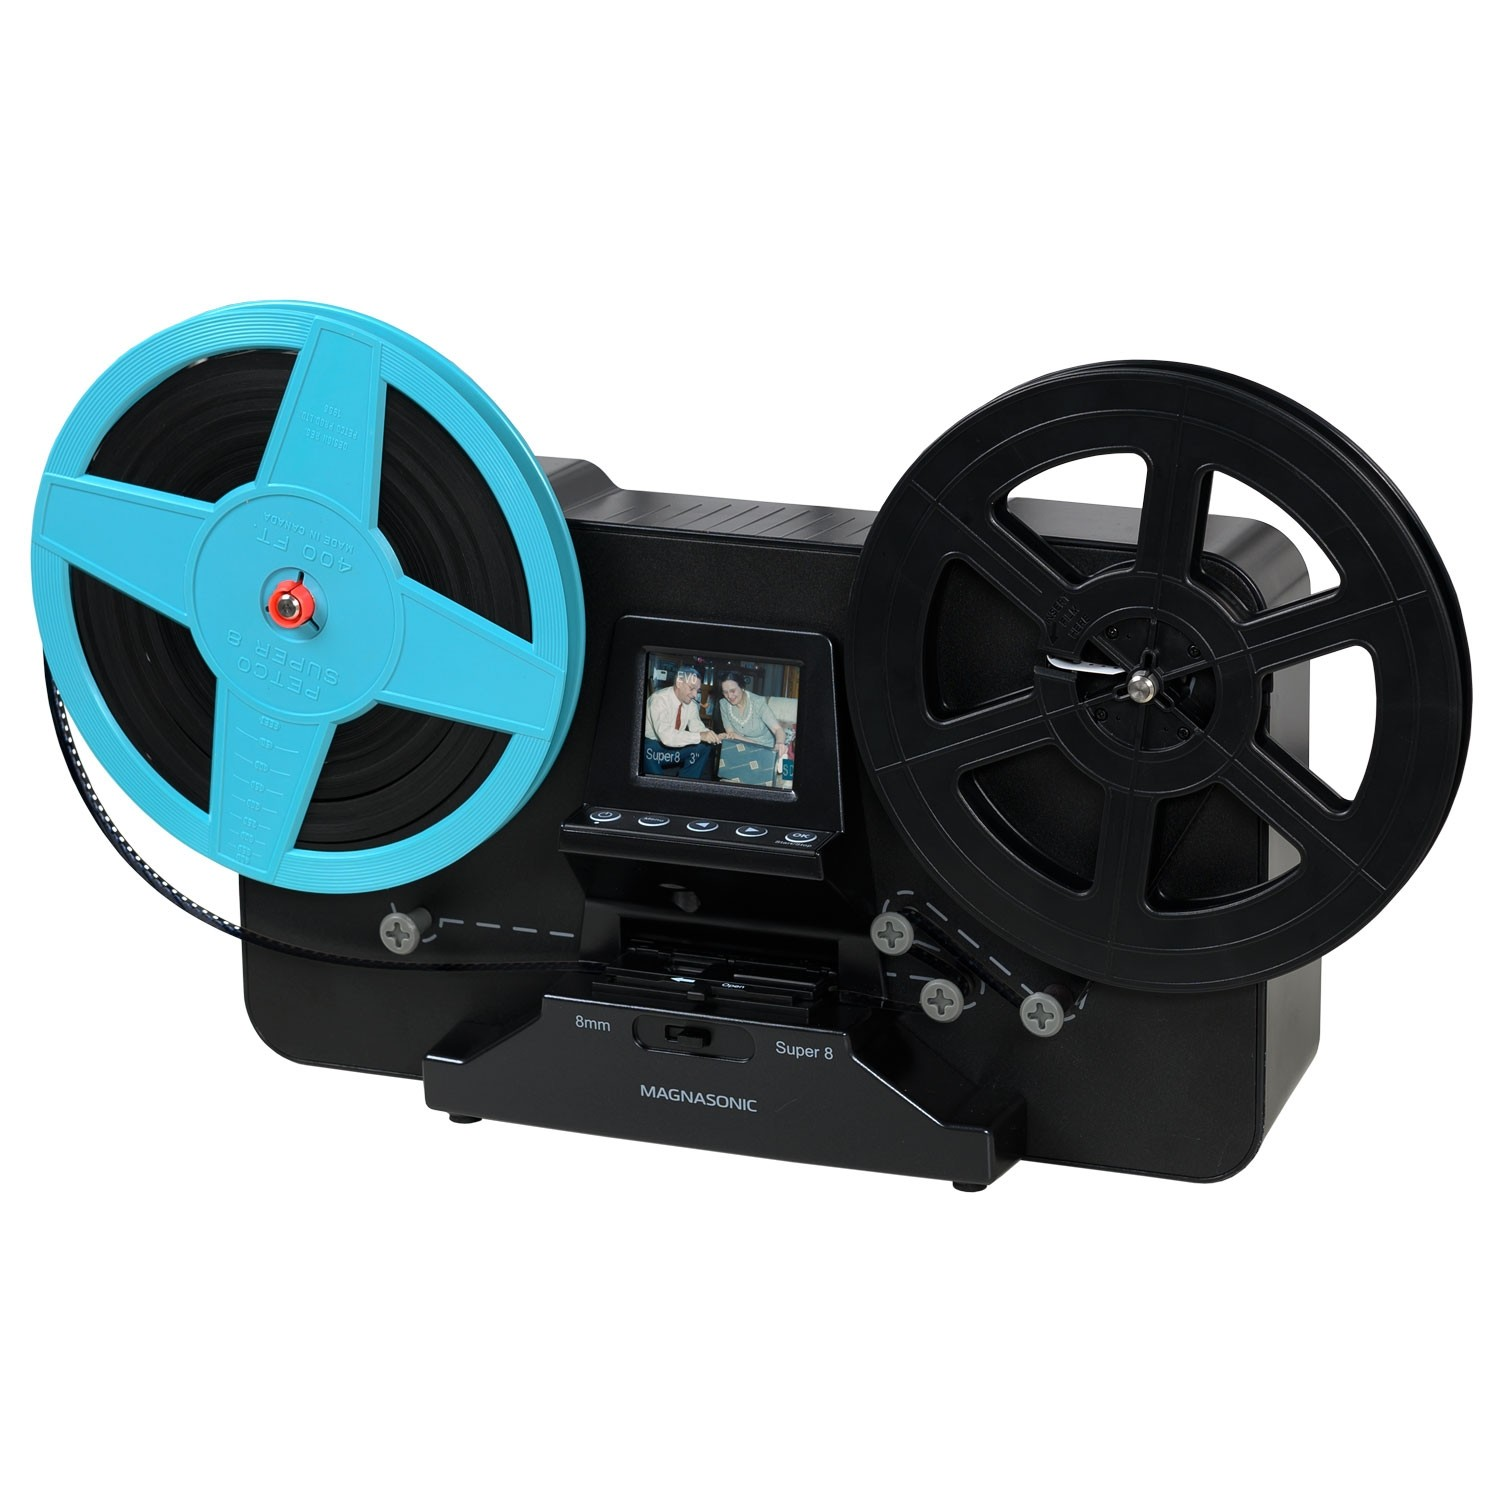 Super 8/8mm Film Scanner - Main